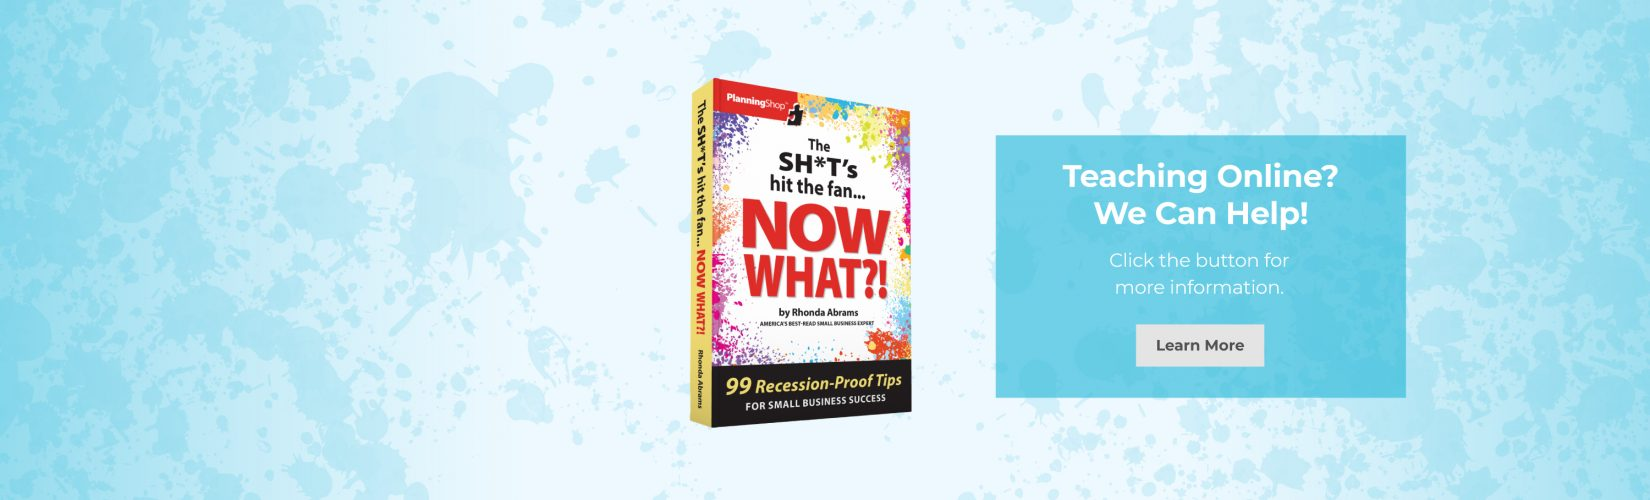 Image banner. The Sh*t's Hit the Fan…Now What?! 99 Recession-Proof Tips for Small Business Success. Click to learn more.